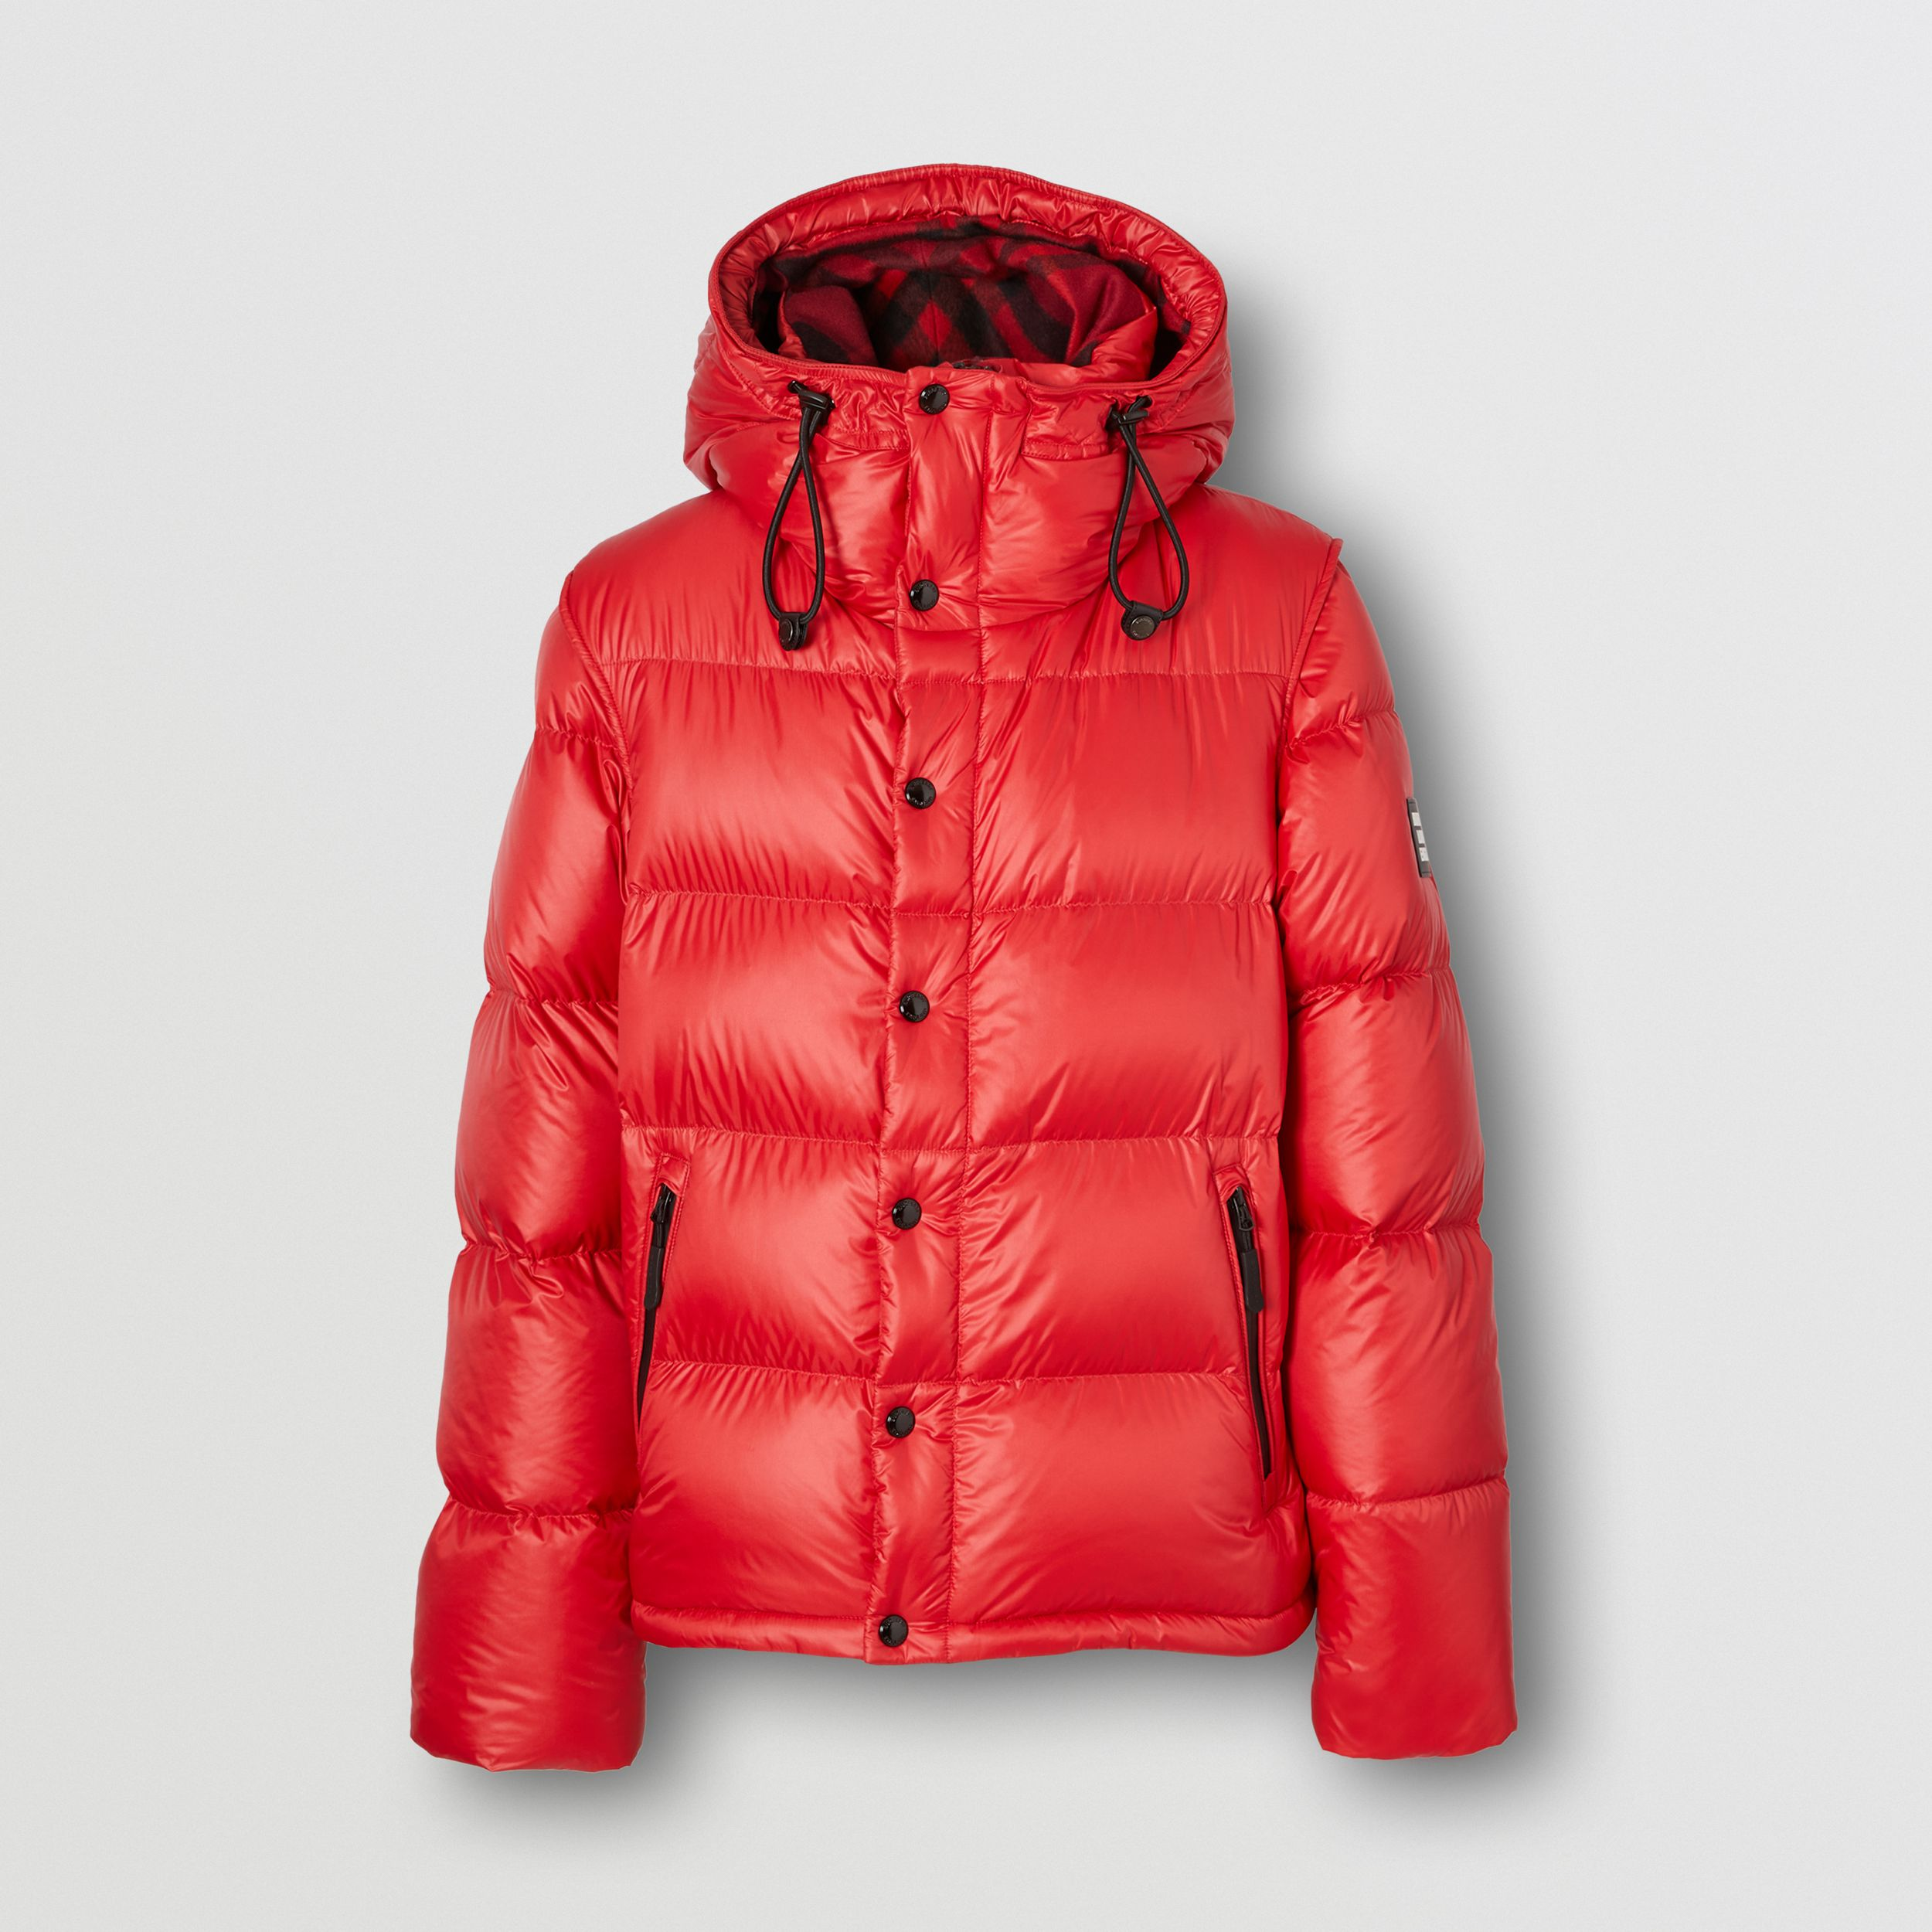 Detachable Sleeve Hooded Puffer Jacket in Bright Red - Men | Burberry Australia - 4